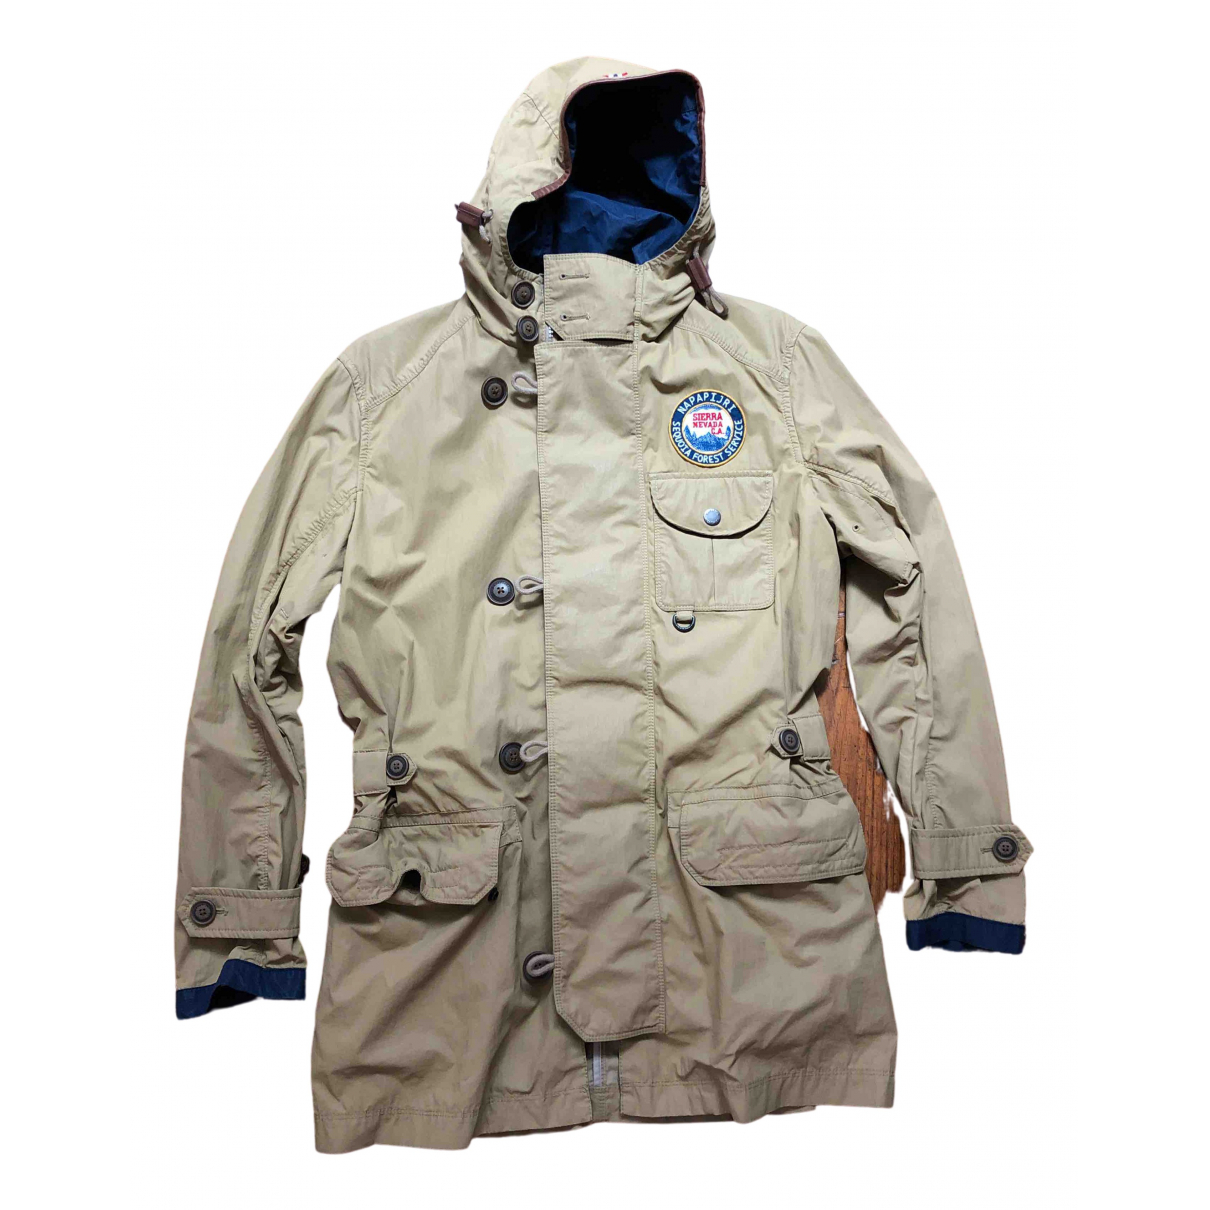 Napapijri \N Beige Cotton jacket  for Men S International